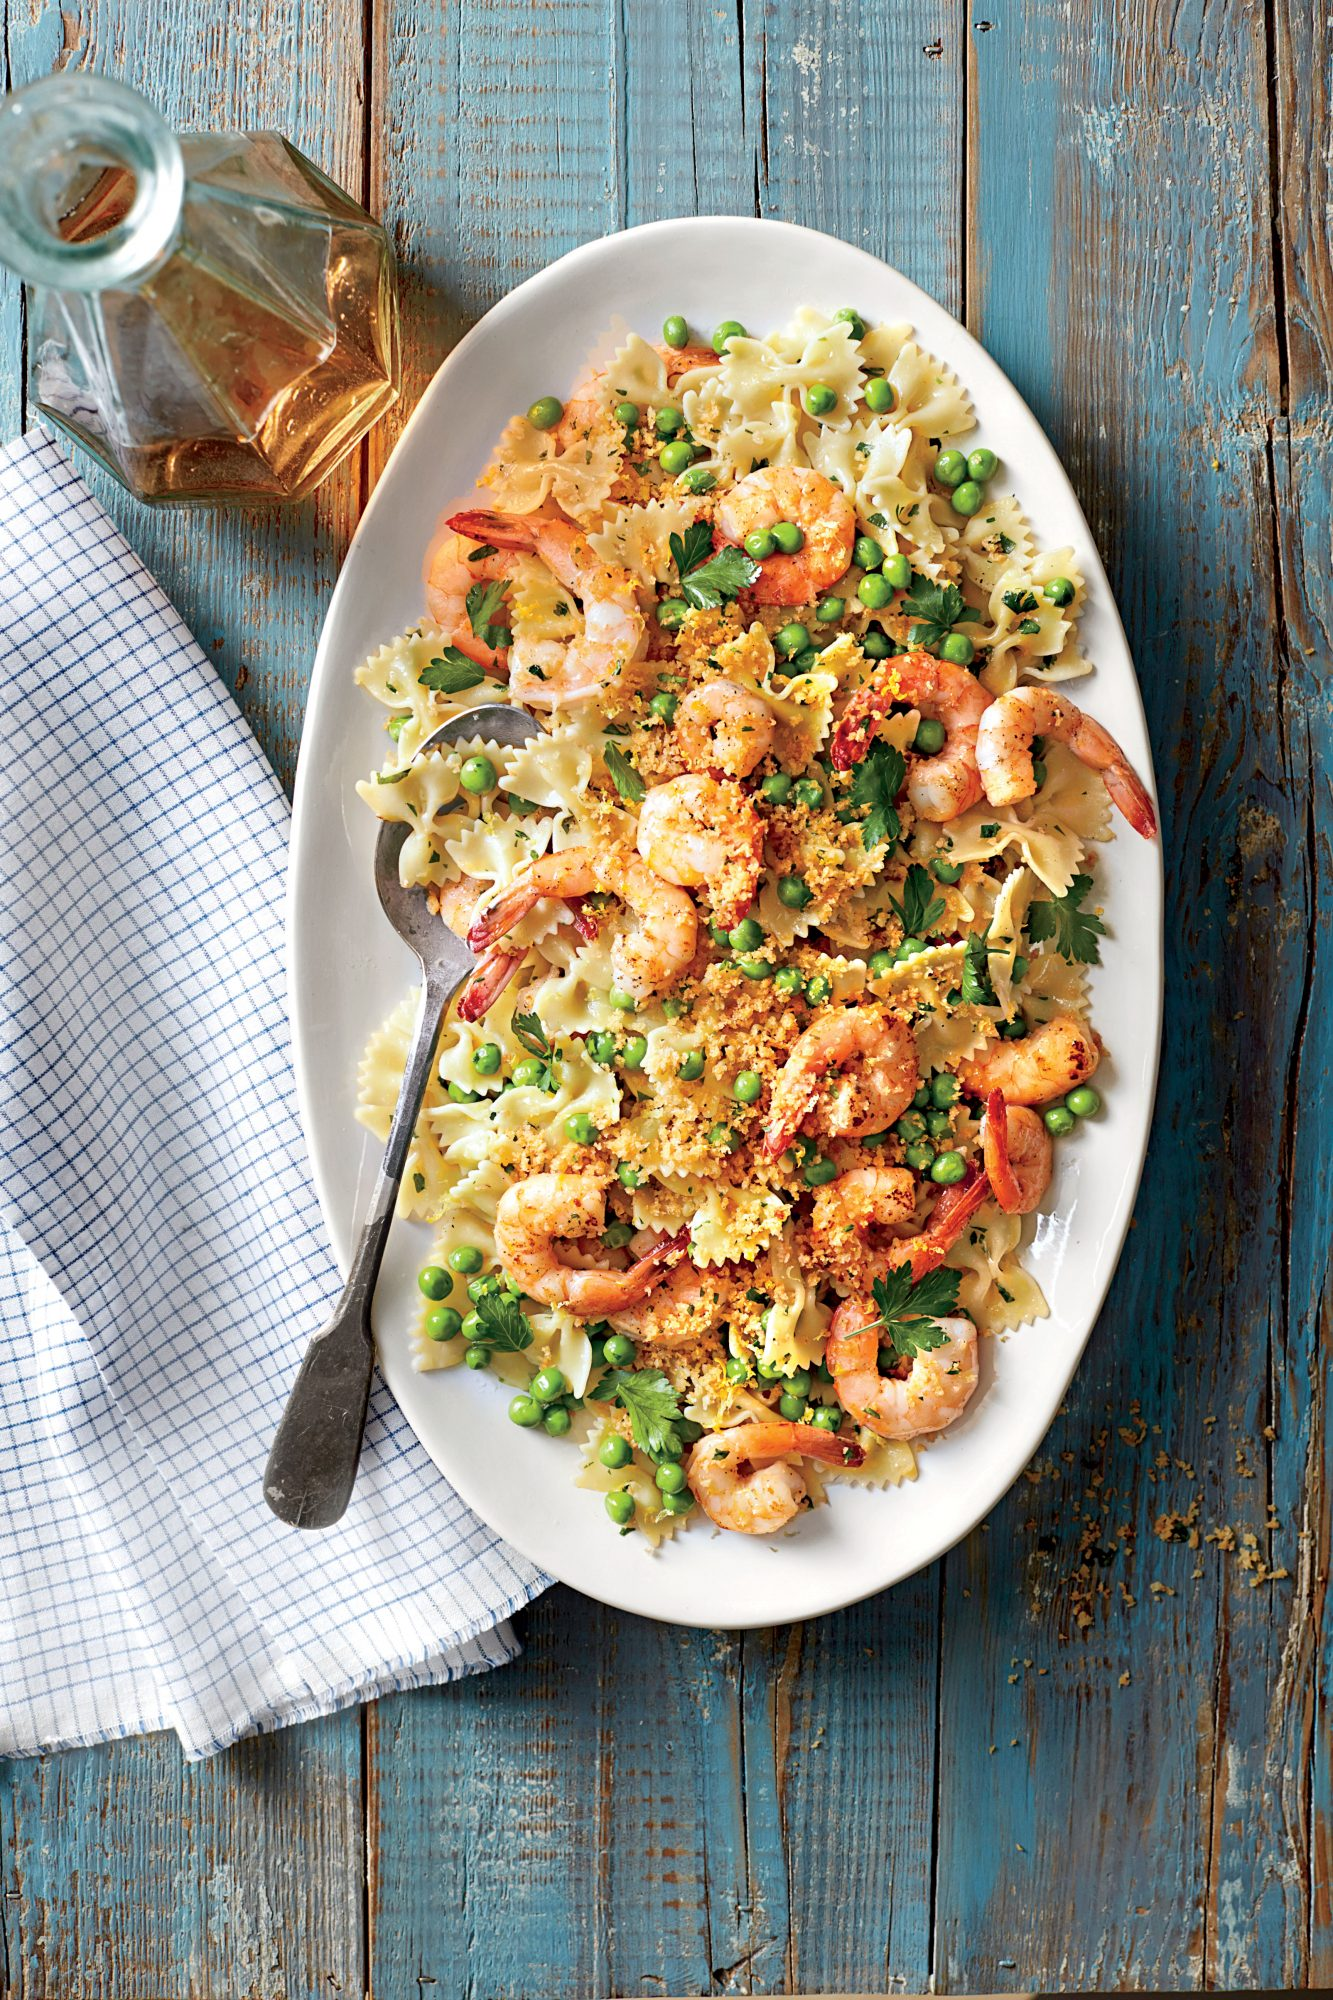 Shrimp and Peas with Farfalle